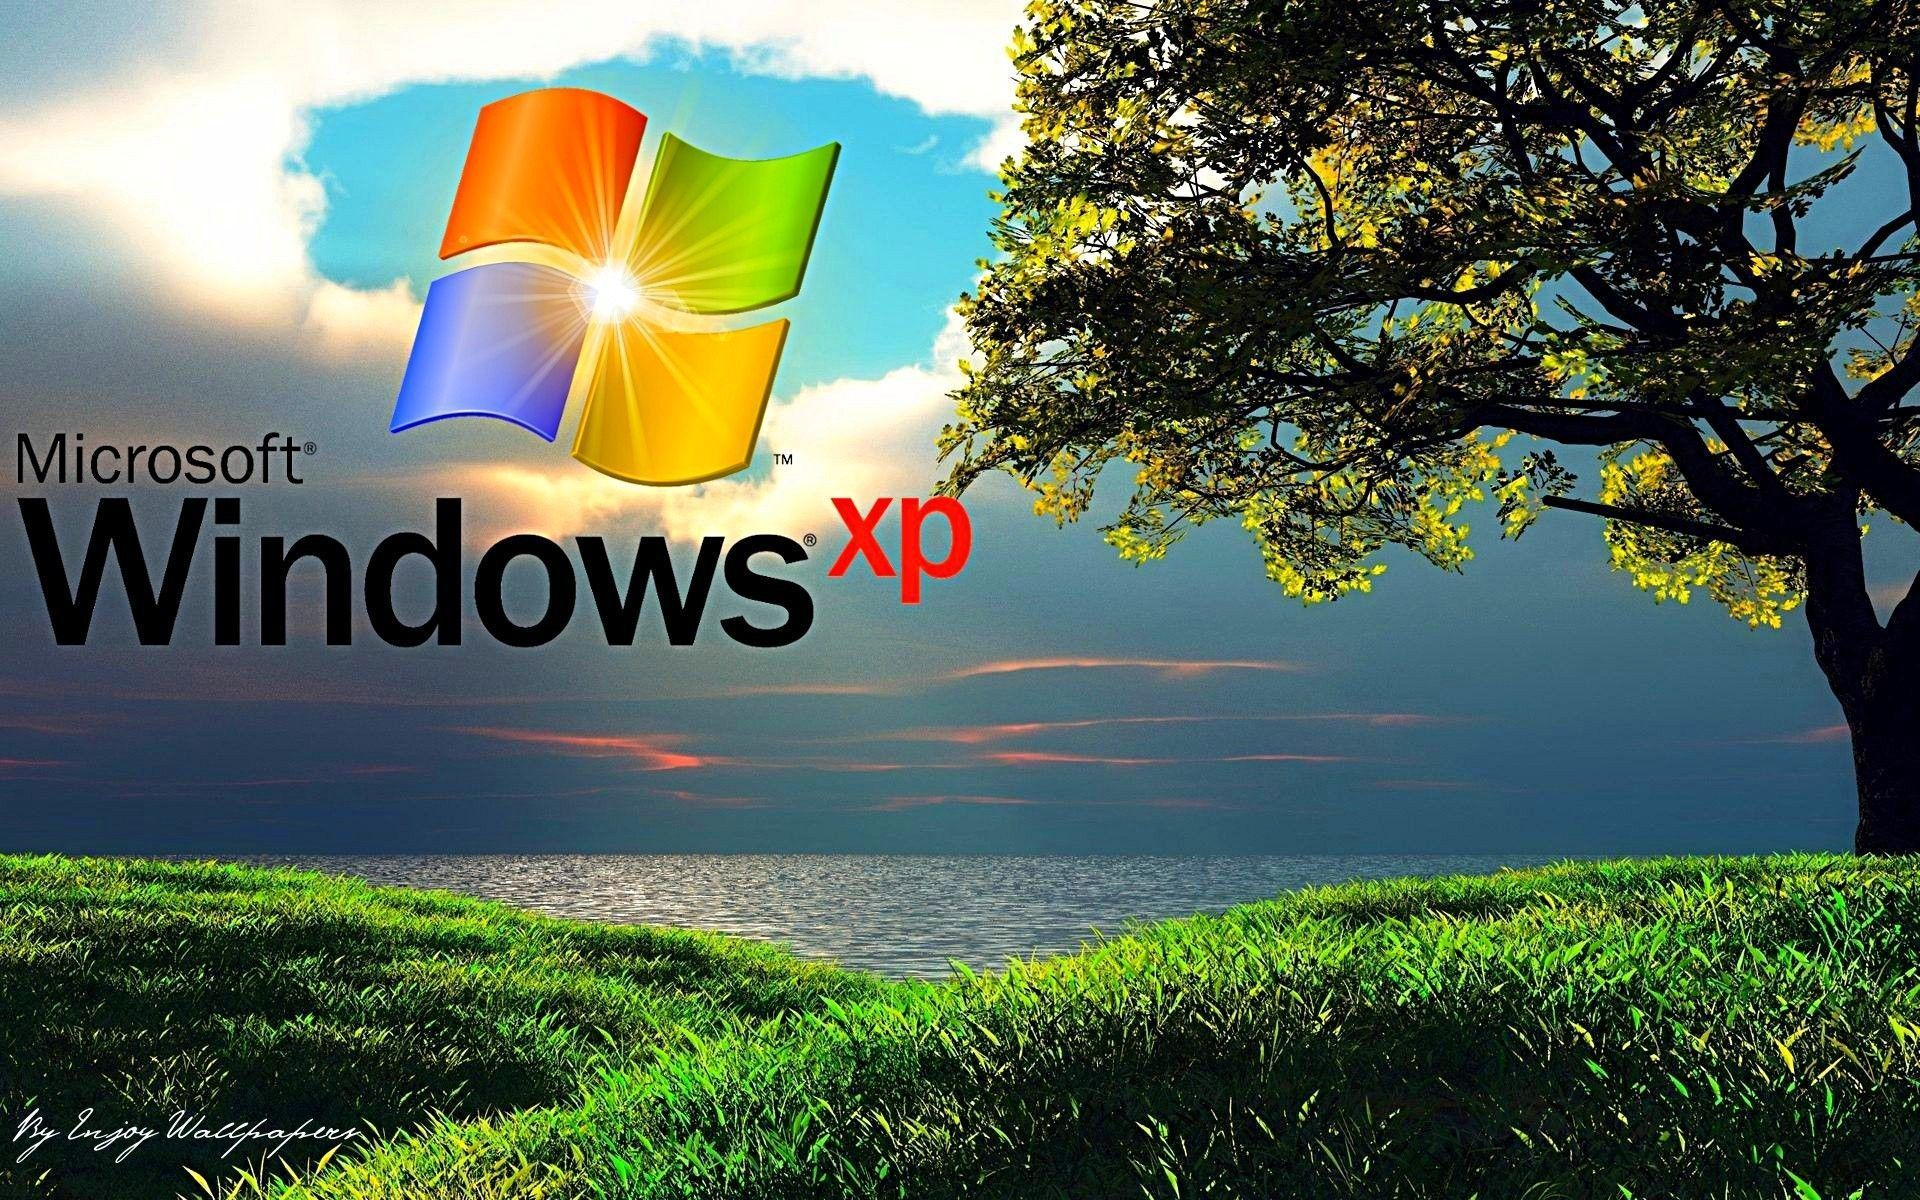 Download Hd Windows Xp Wallpapers For Free 1920 1200 Xp Wallpaper